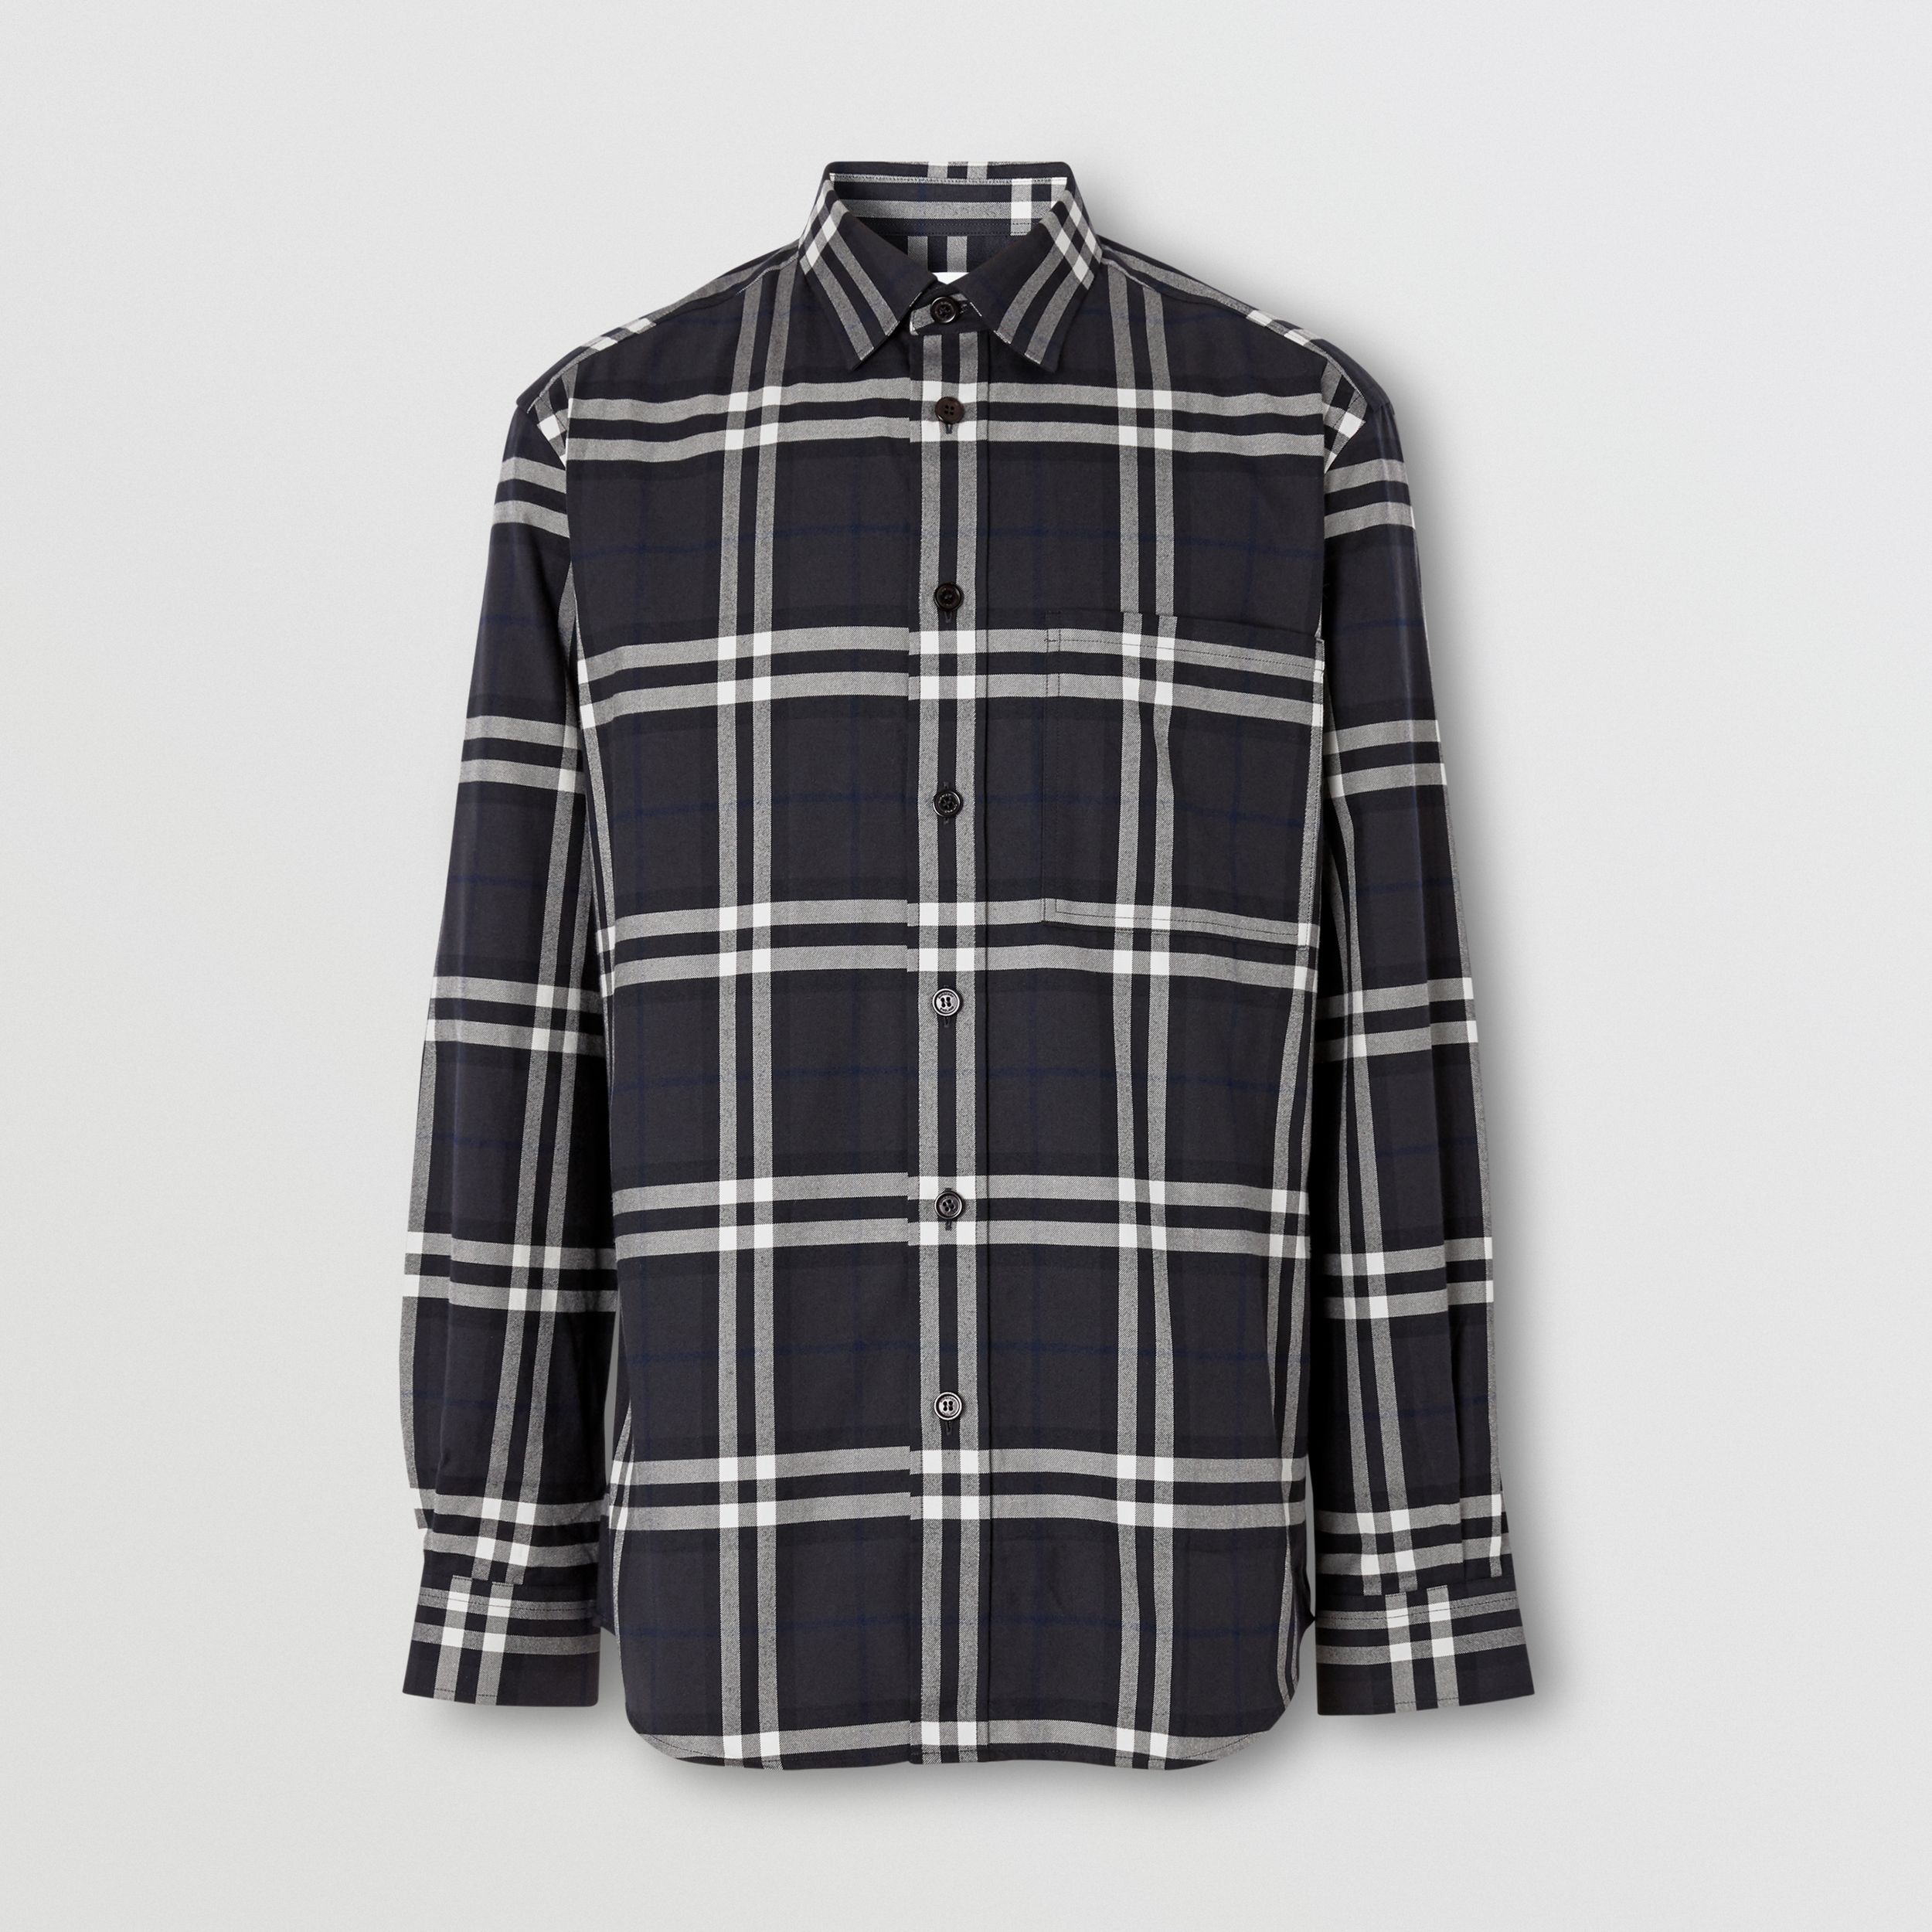 Vintage Check Cotton Flannel Shirt in Charcoal - Men | Burberry - 4